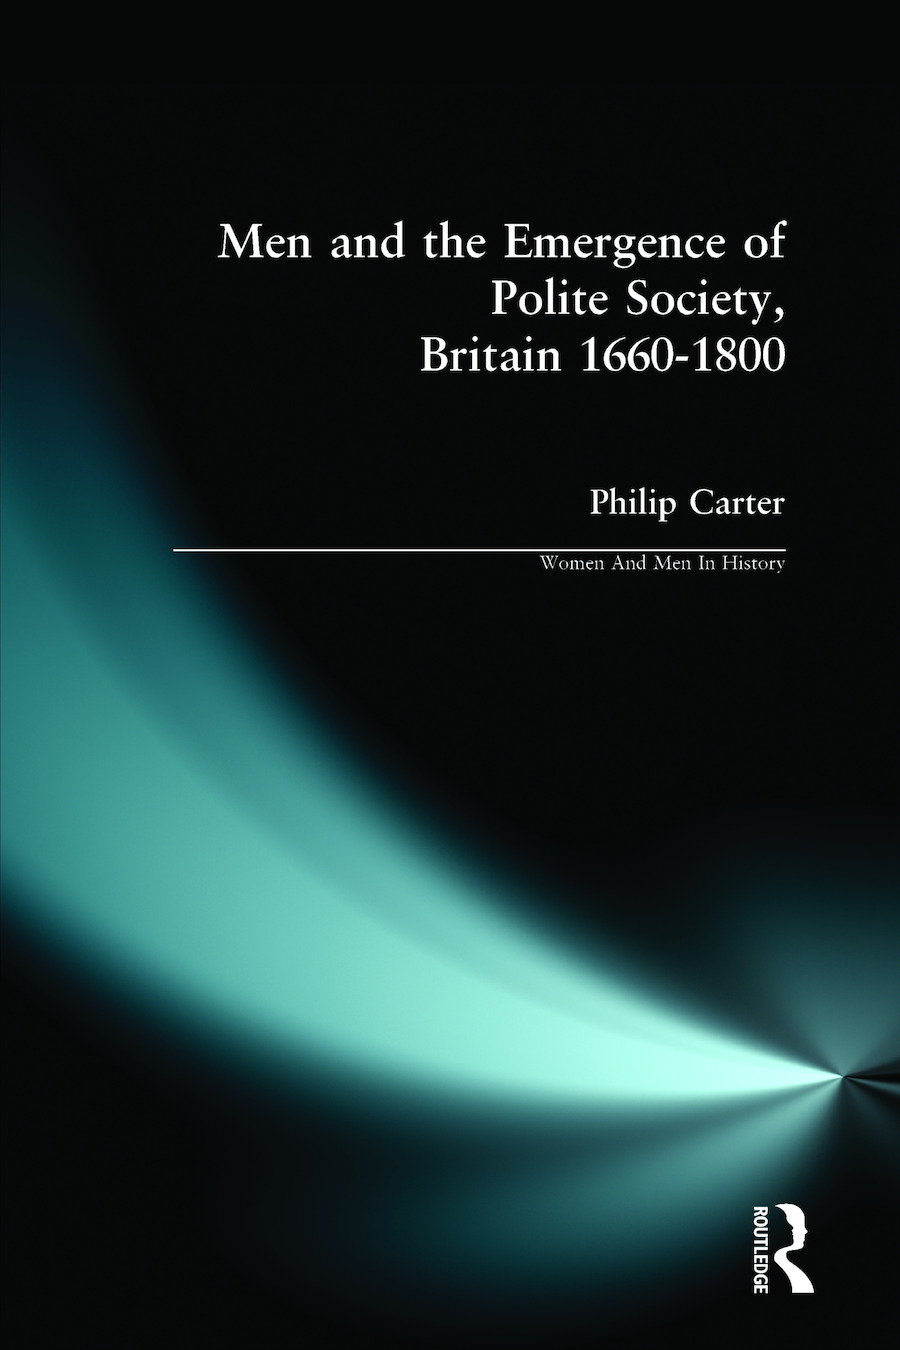 Men and the Emergence of Polite Society, Britain 1660-1800 book cover